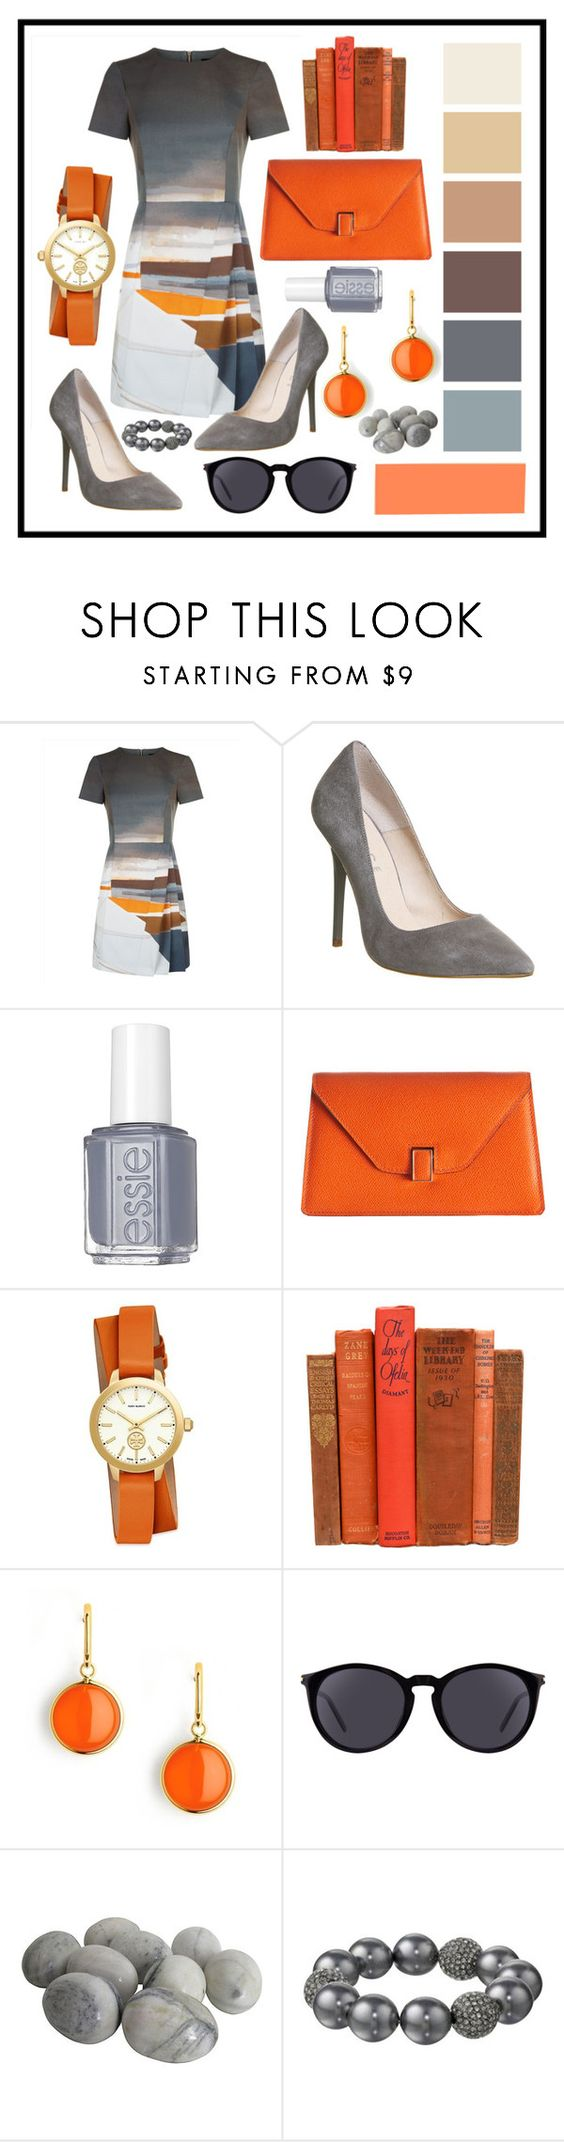 """""""UniqueDress"""" by alannahilll ❤ liked on Polyvore featuring Jaeger, Office, Essie, Valextra, Tory Burch, Syna, Yves Saint Laurent and Kenneth Jay Lane"""